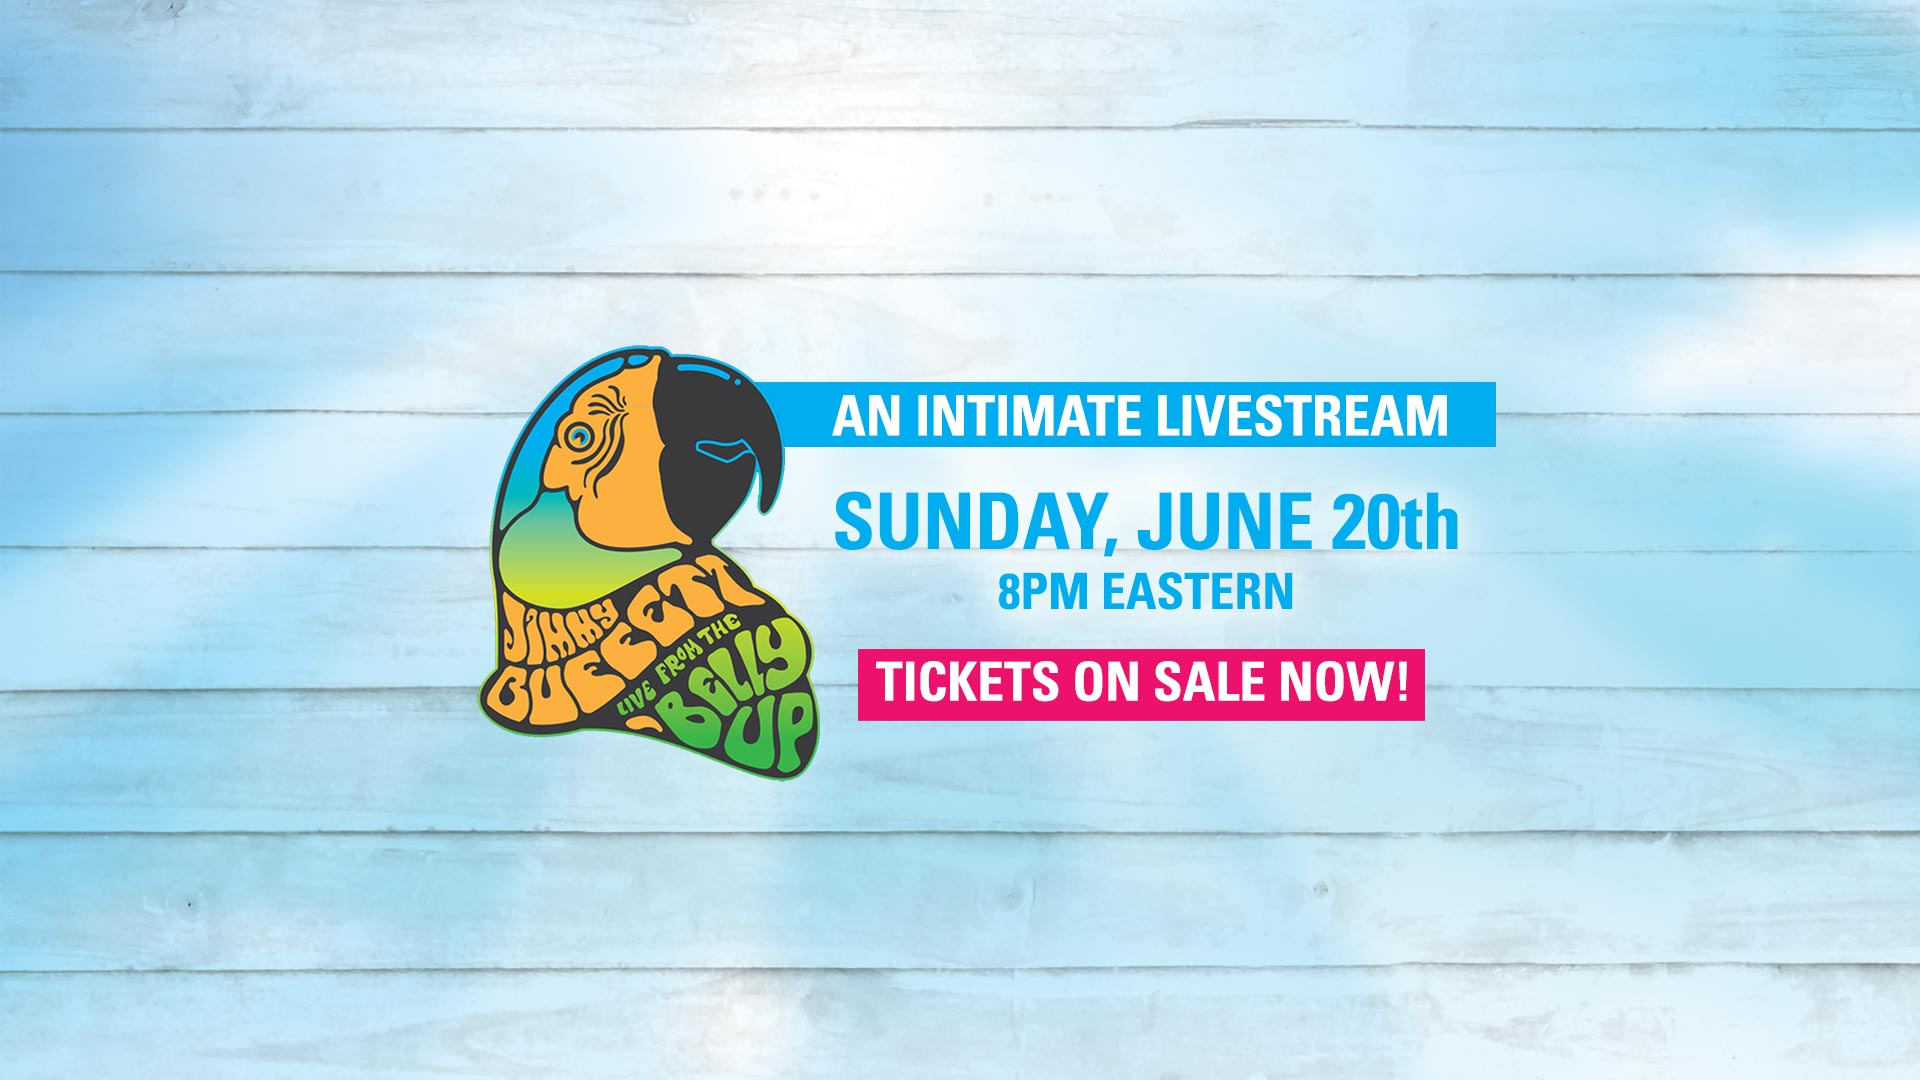 Jimmy Buffett at the Belly Up Livestream Tickets Available Now